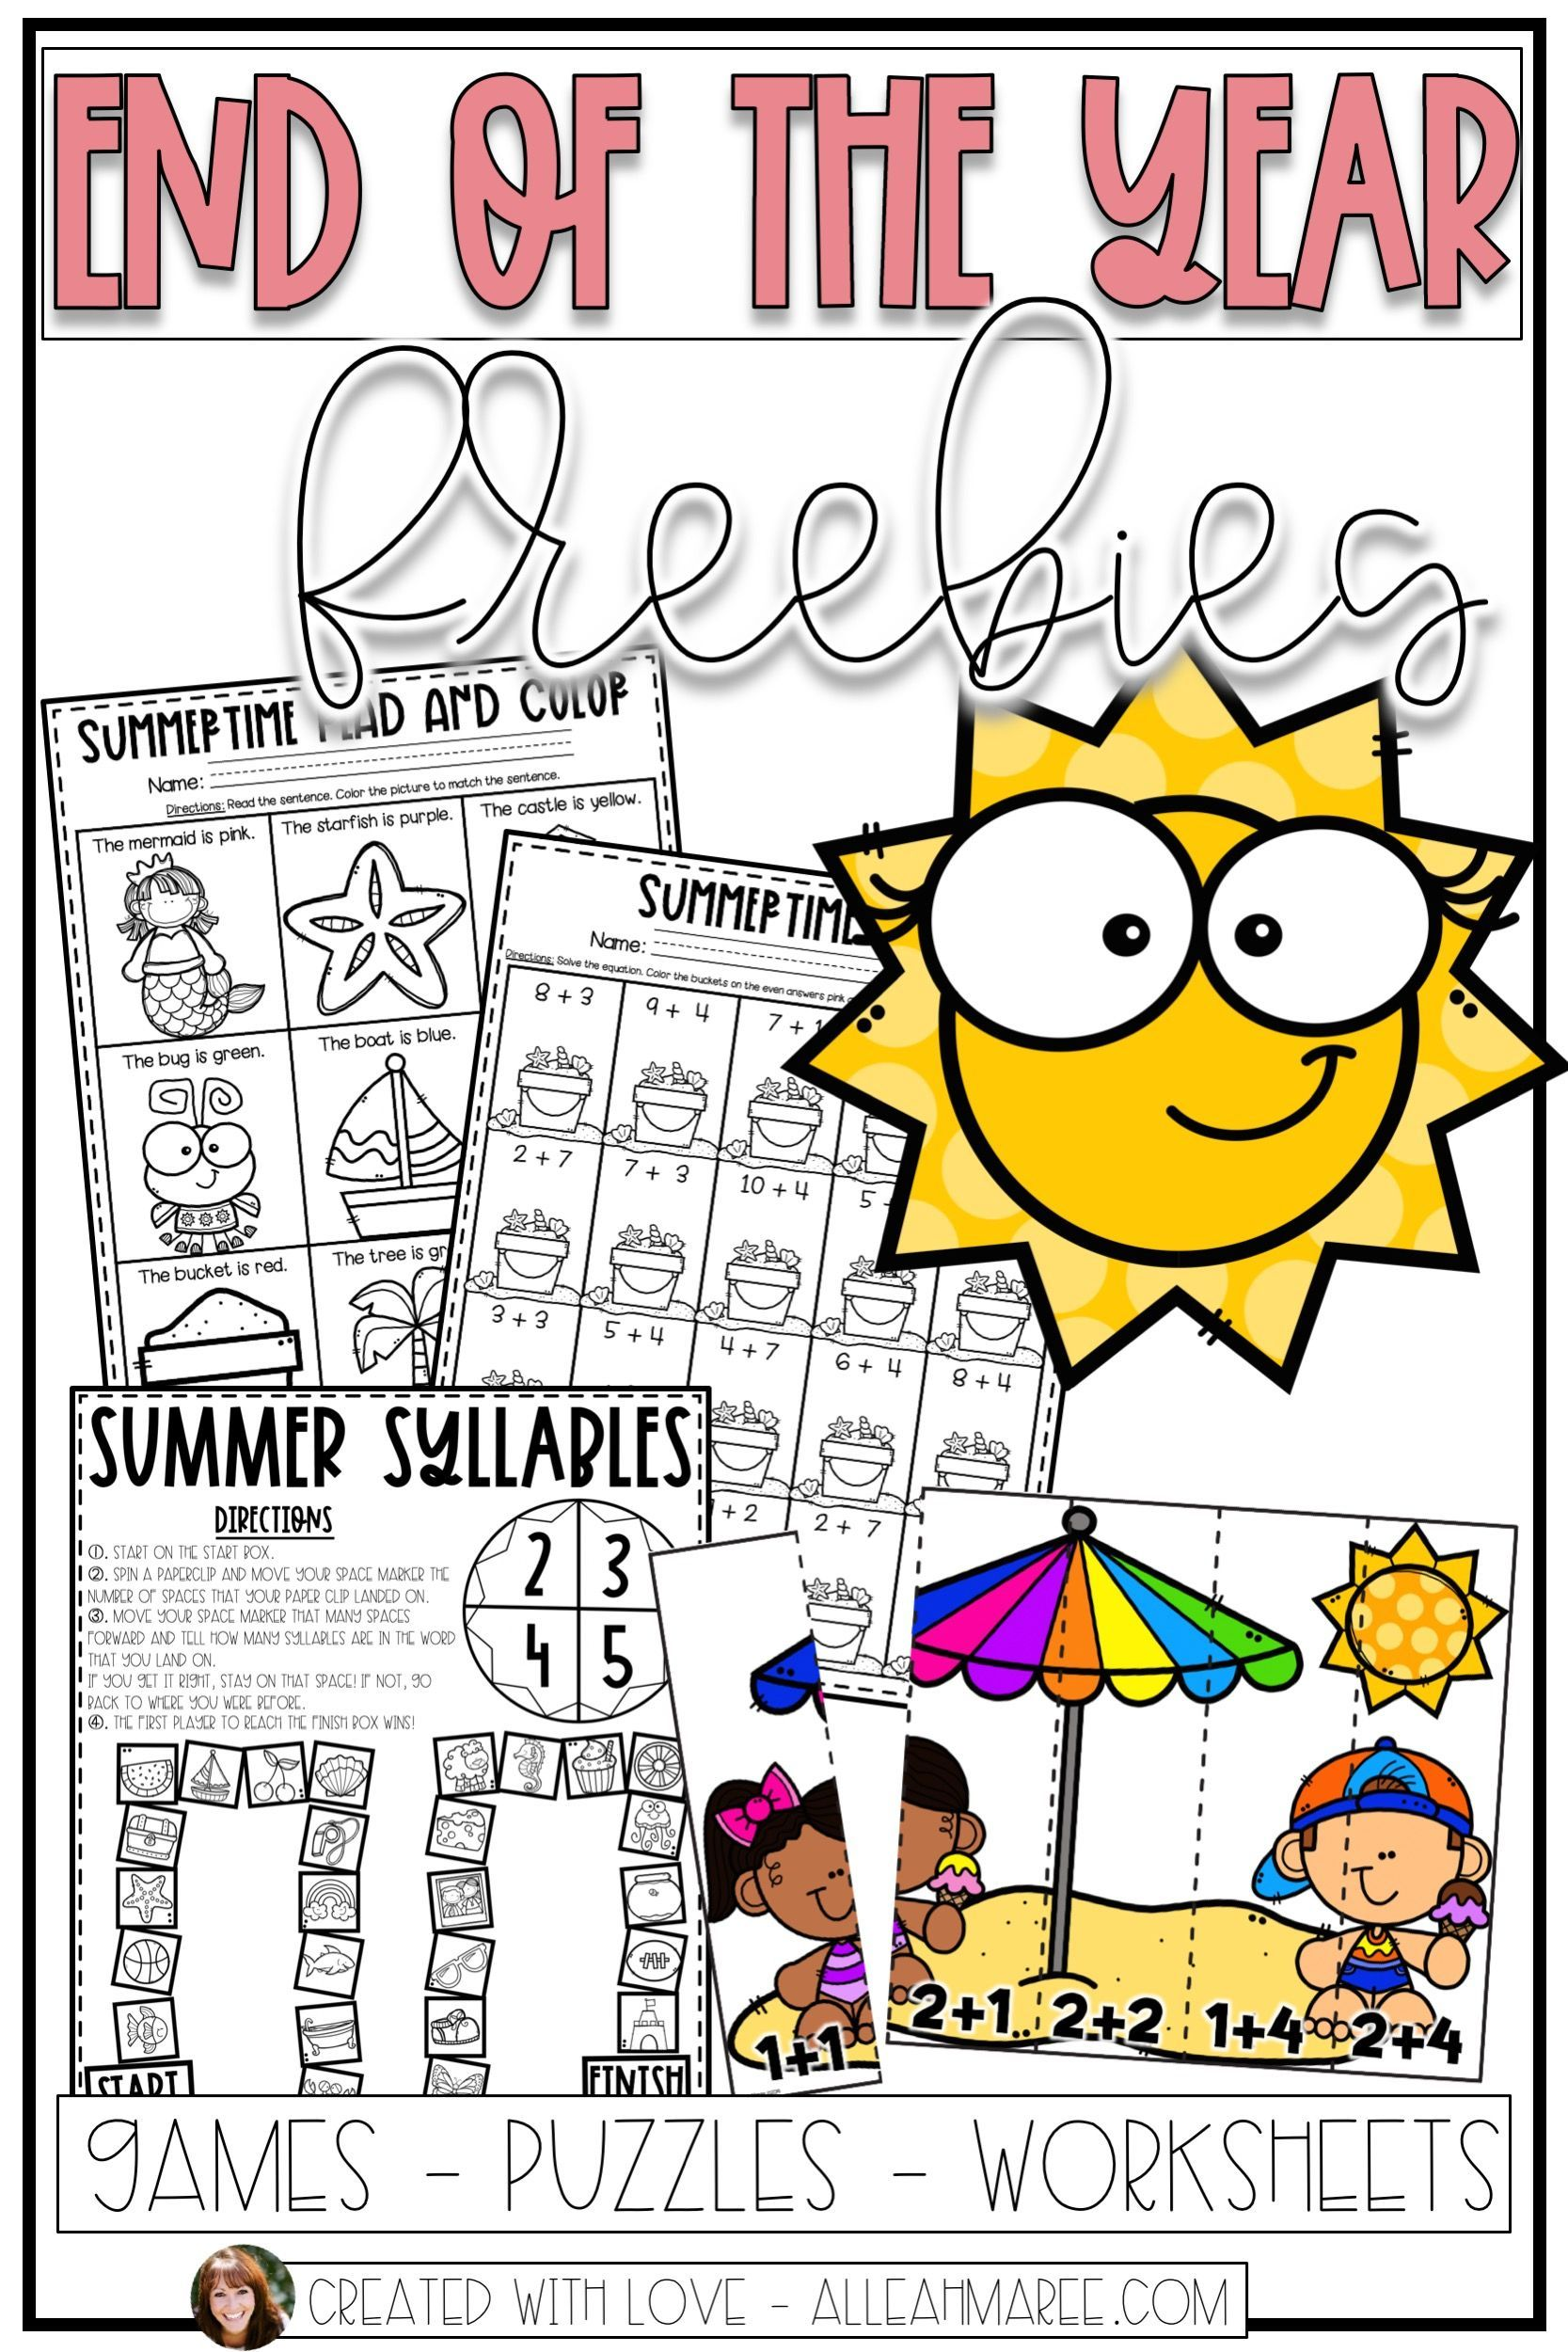 These End Of The Year Activities For Kindergarten And First Grade Are Fun Engaging Worksheets Puzz Kindergarten Fun Kindergarten Activities School Activities [ 2500 x 1667 Pixel ]